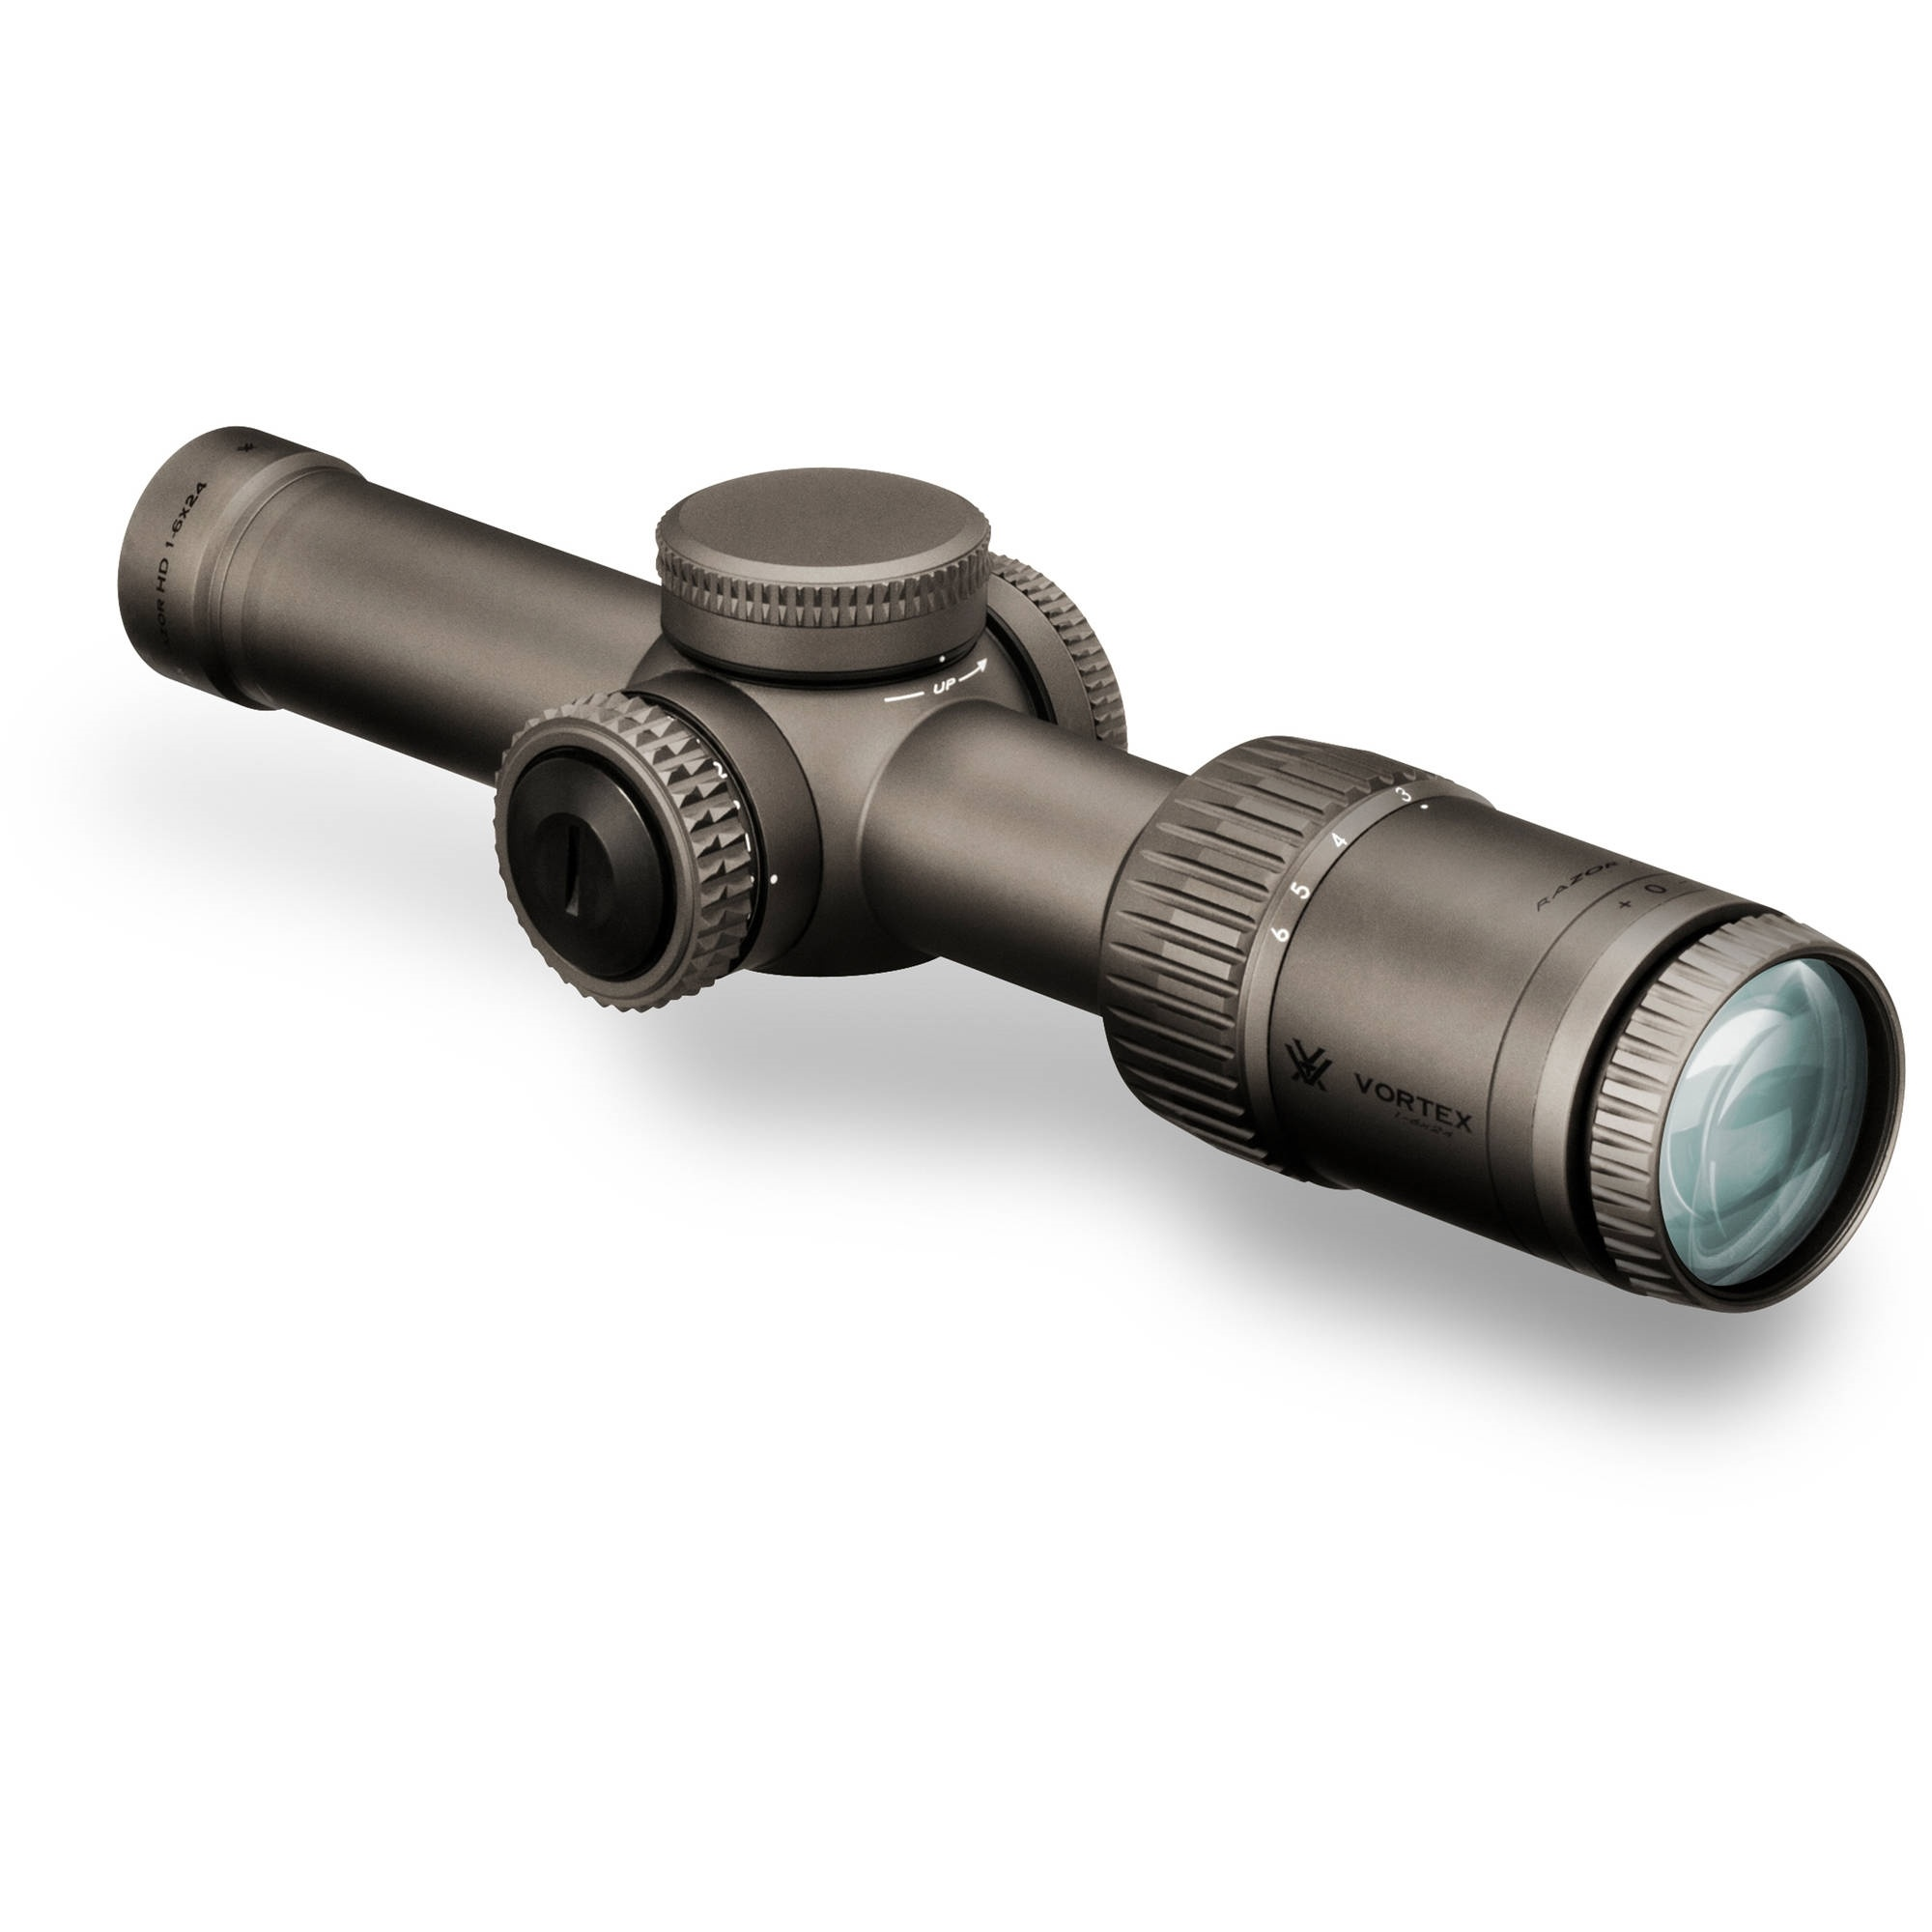 Vortex 1-6x24 Razor HD GEN II-E Riflescope (JM-1 BDC Reticle)